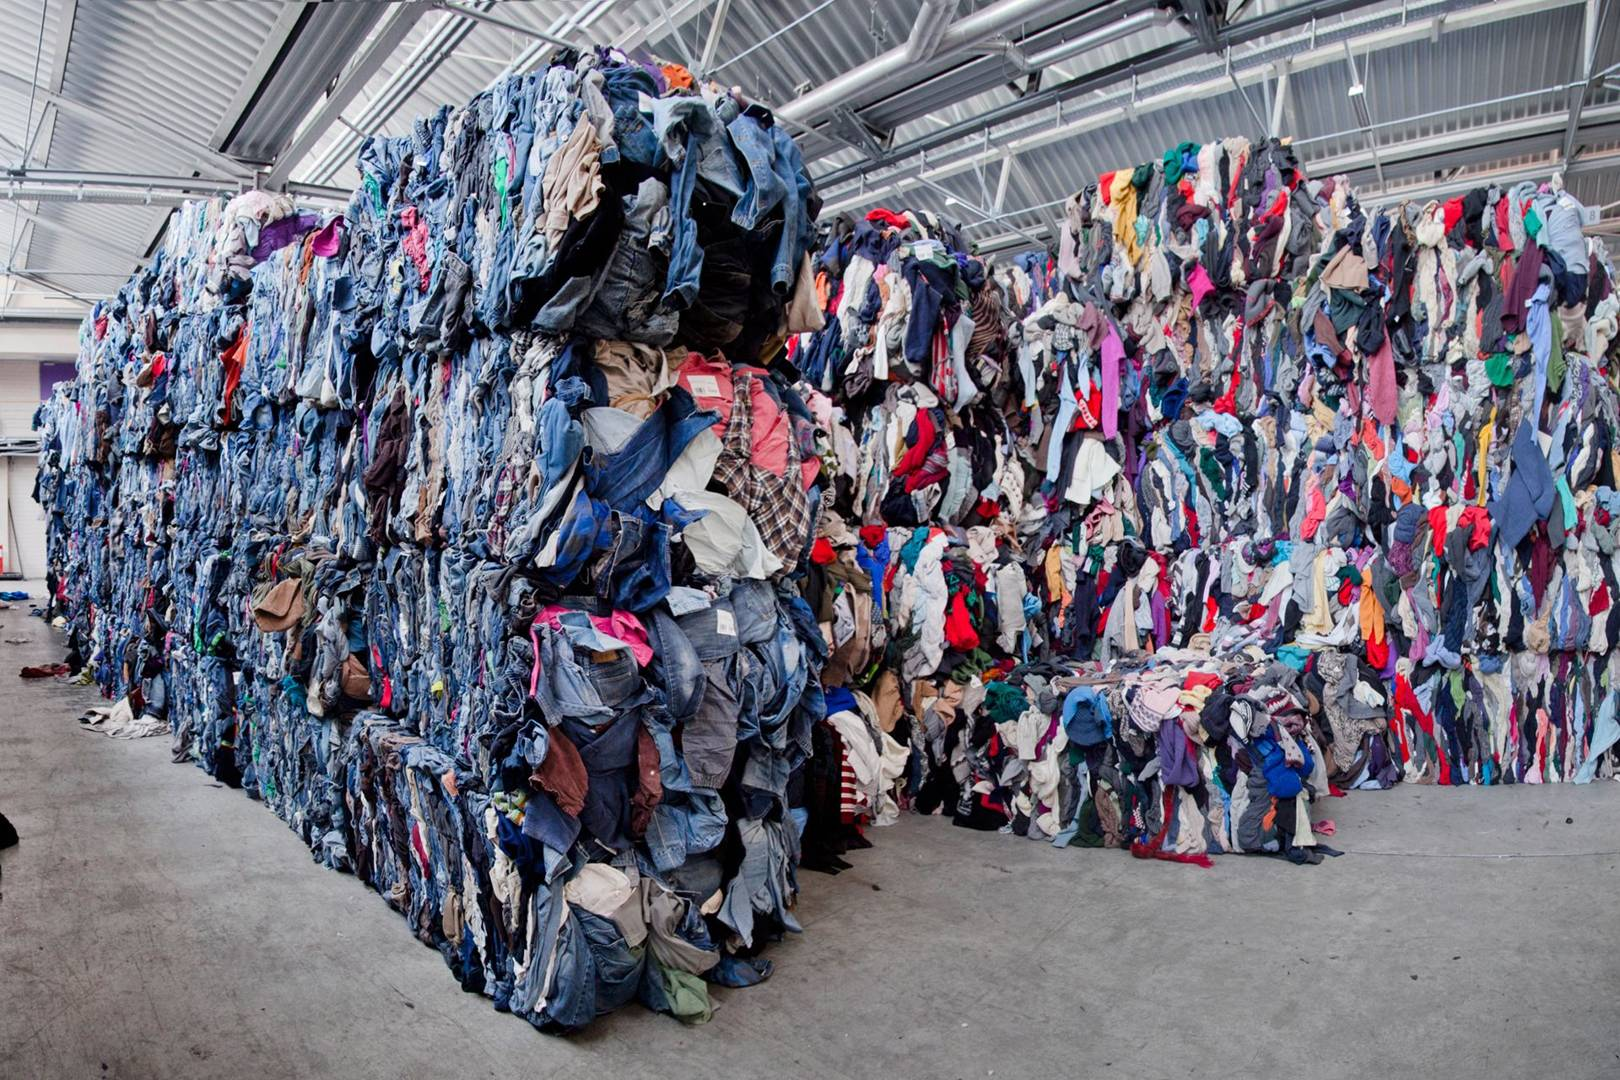 Mountains of sorted clothing at one of the facilities where H&M recycles clothing. The company was accused of burning 60 tons of recyclable garments in 2017. Credit: GQ